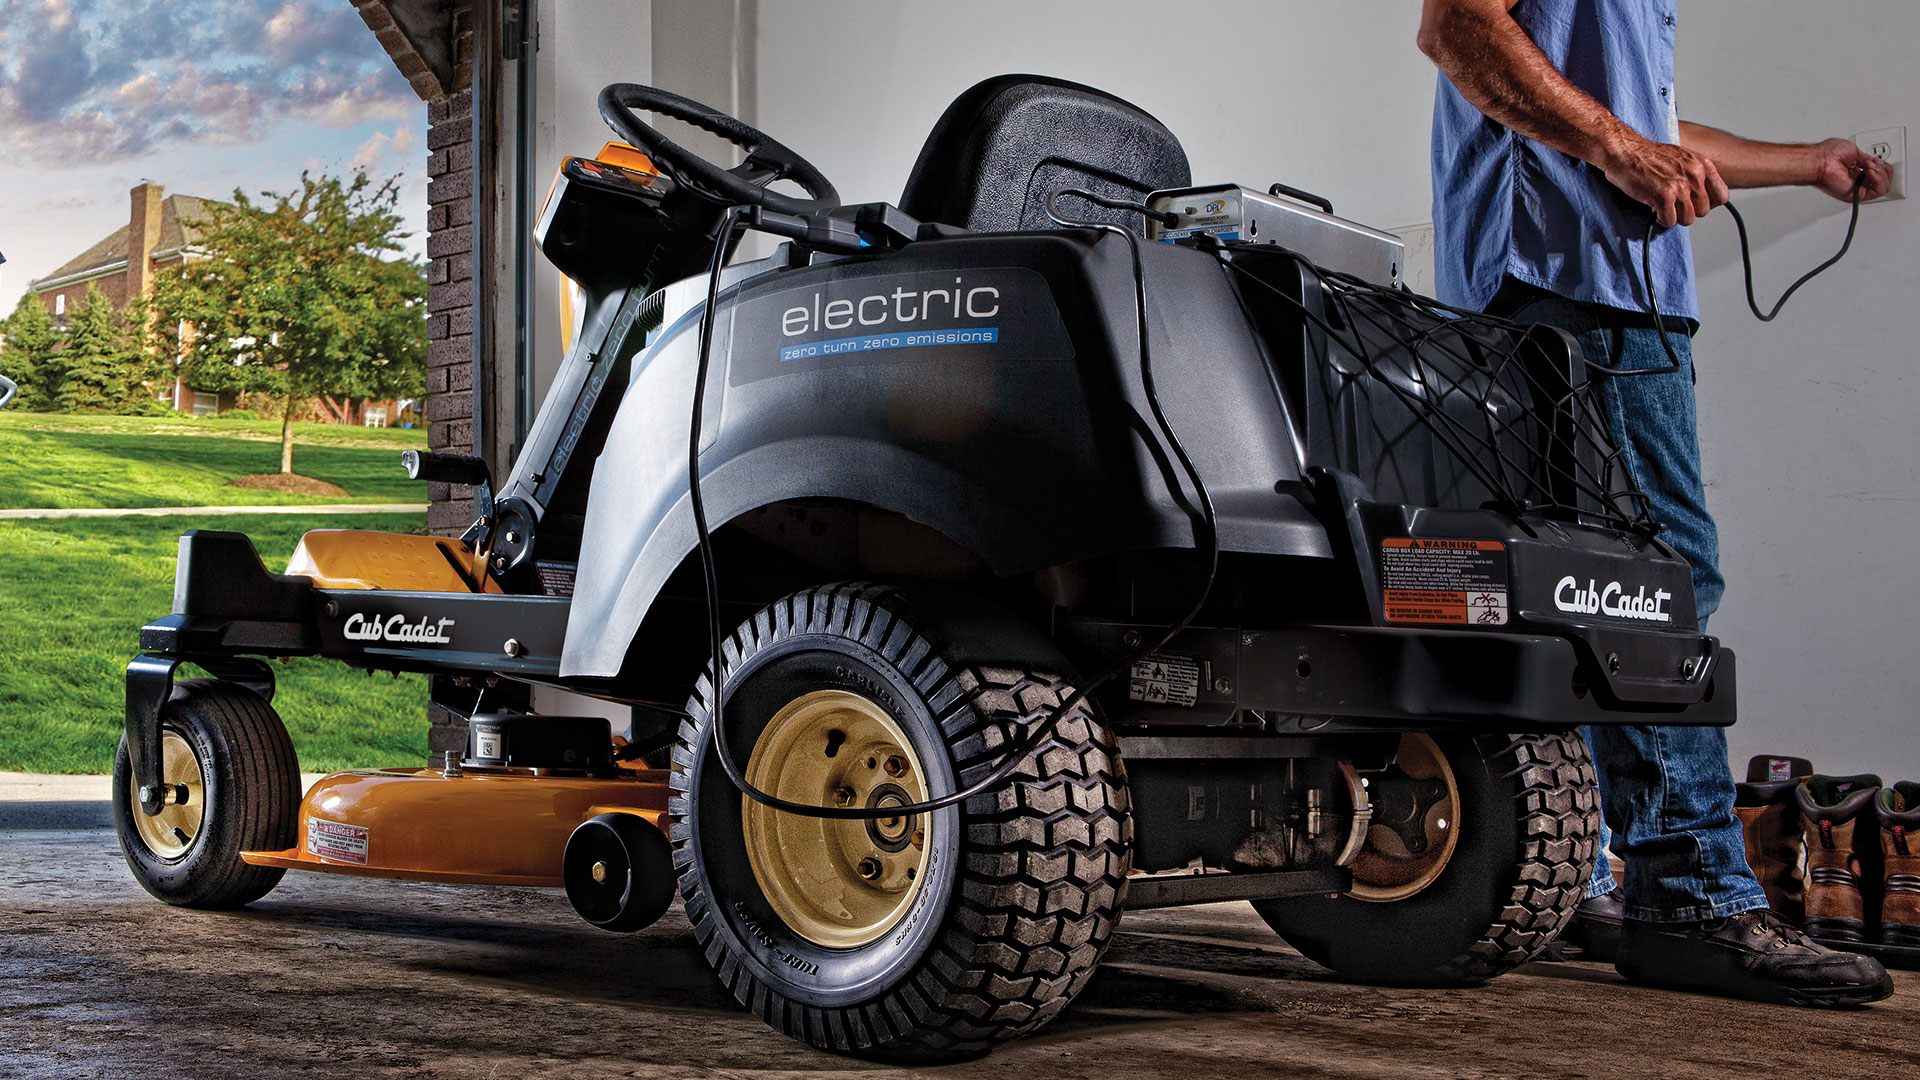 electric riding mower in garage